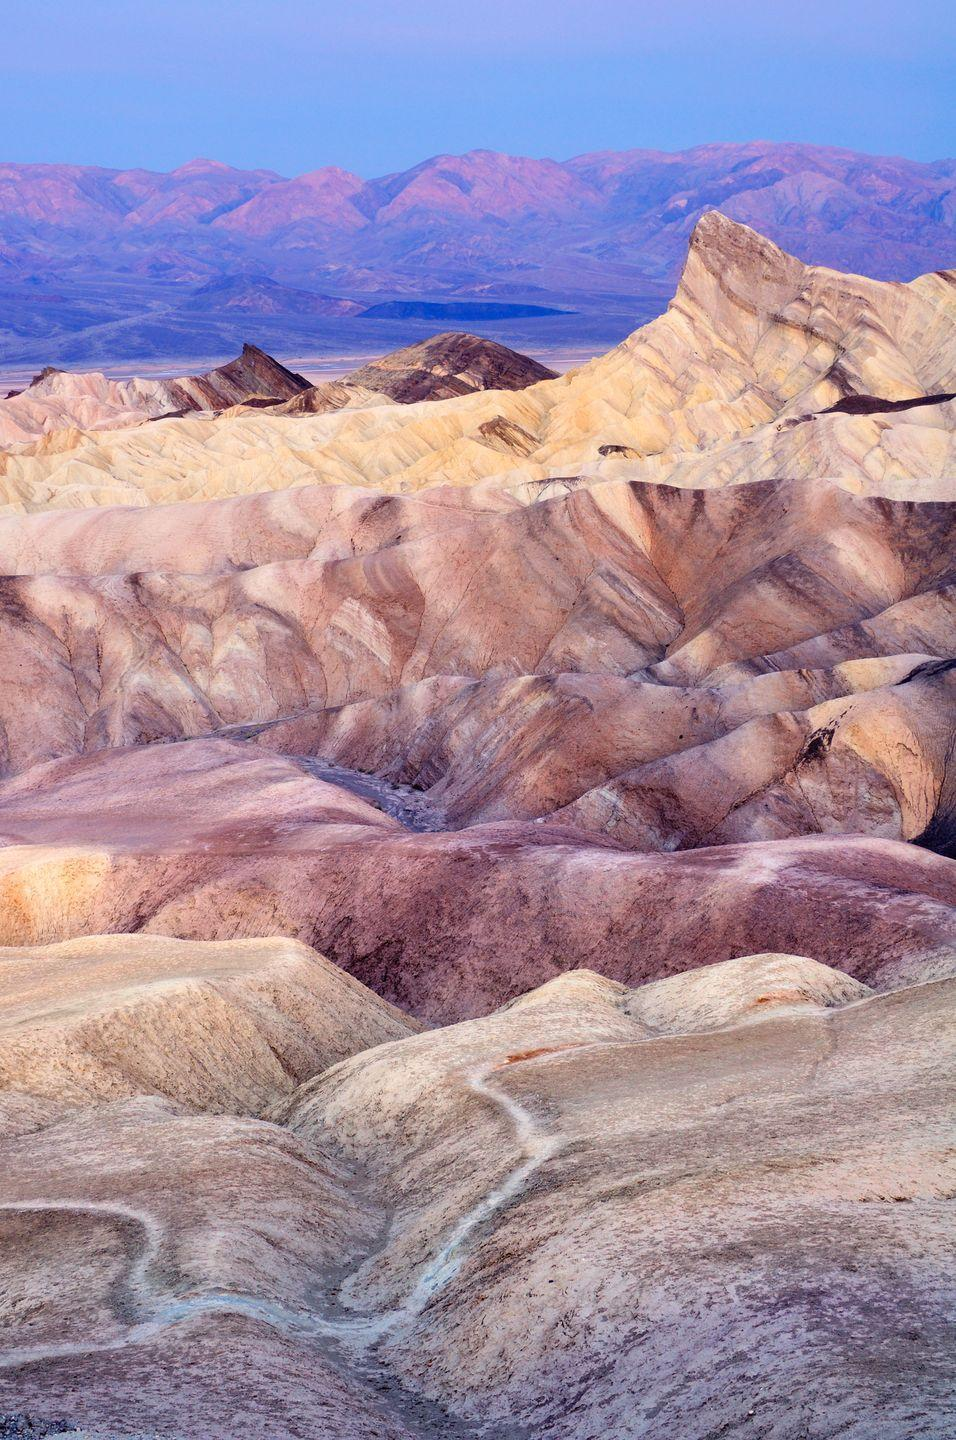 <p><strong>Where: </strong>Death Valley National Park, California</p><p><strong>Why We Love It: </strong>Located on the eastern border of California, Death Valley is America's lowest, hottest, and driest point. But that doesn't make watching the sunset from Zabriskie Point any less beautiful.</p>